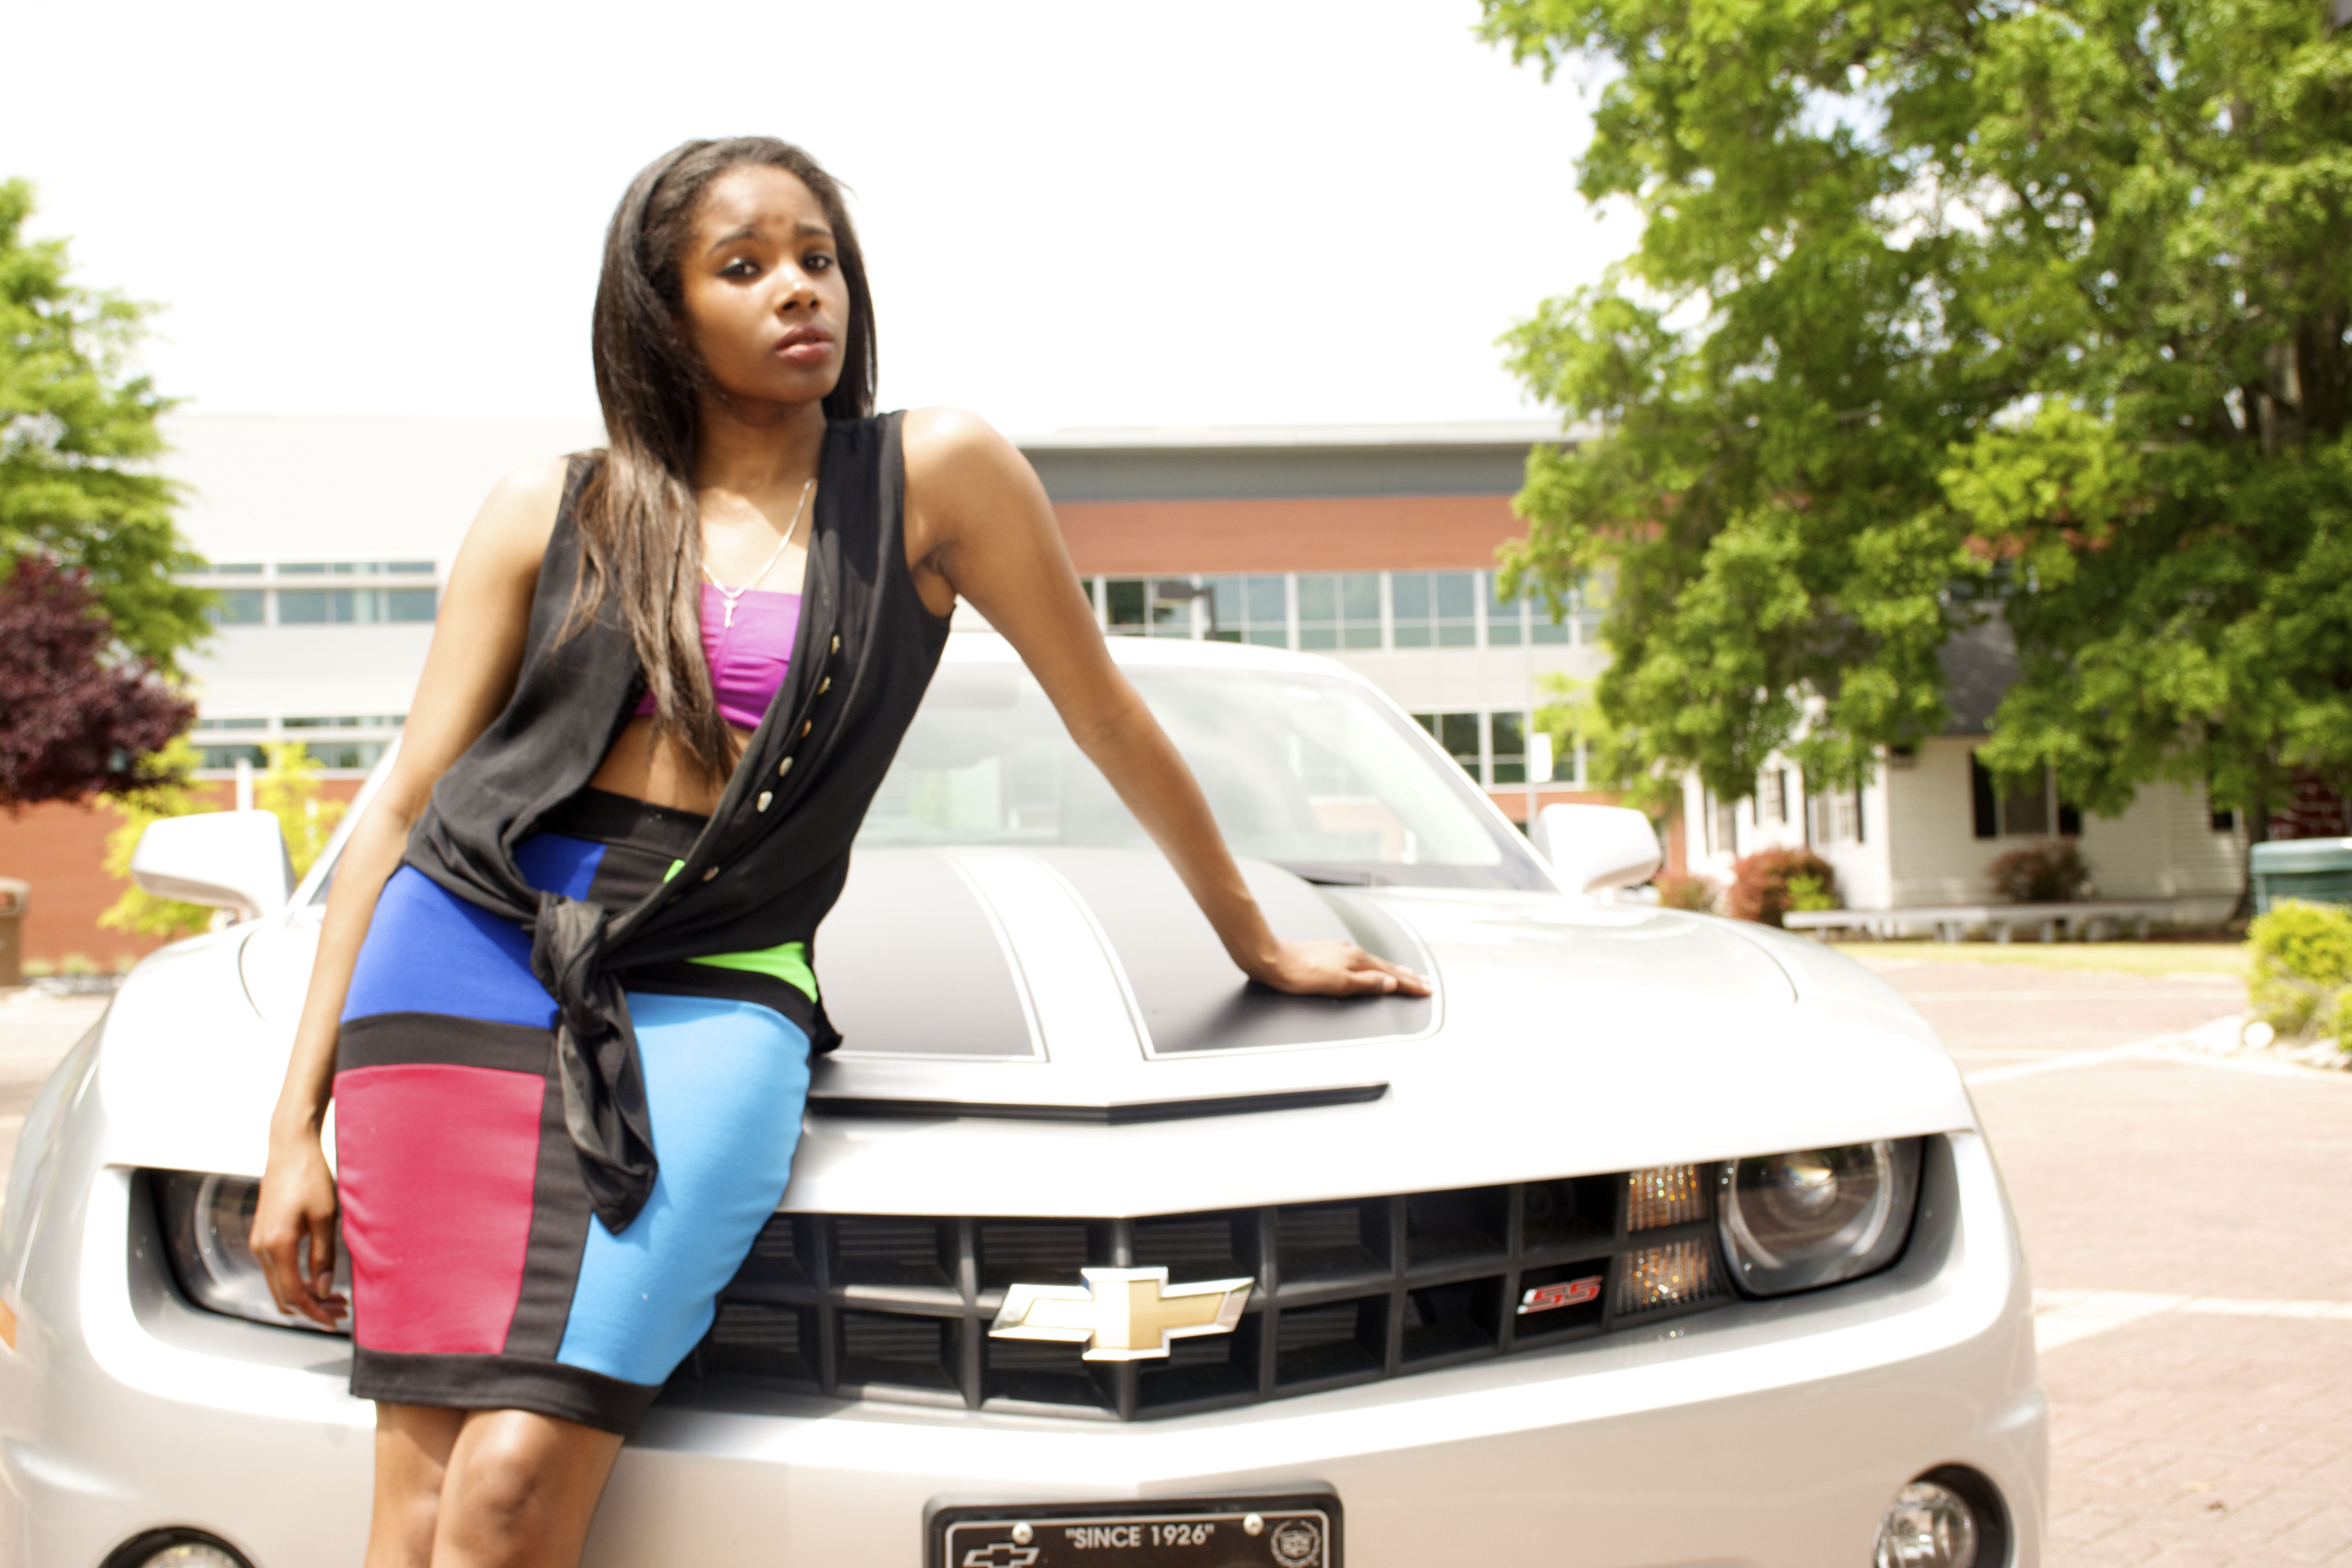 Early For Class Shoot Photographer Eric Eclass Smith Location Sc State University State University University Photographer